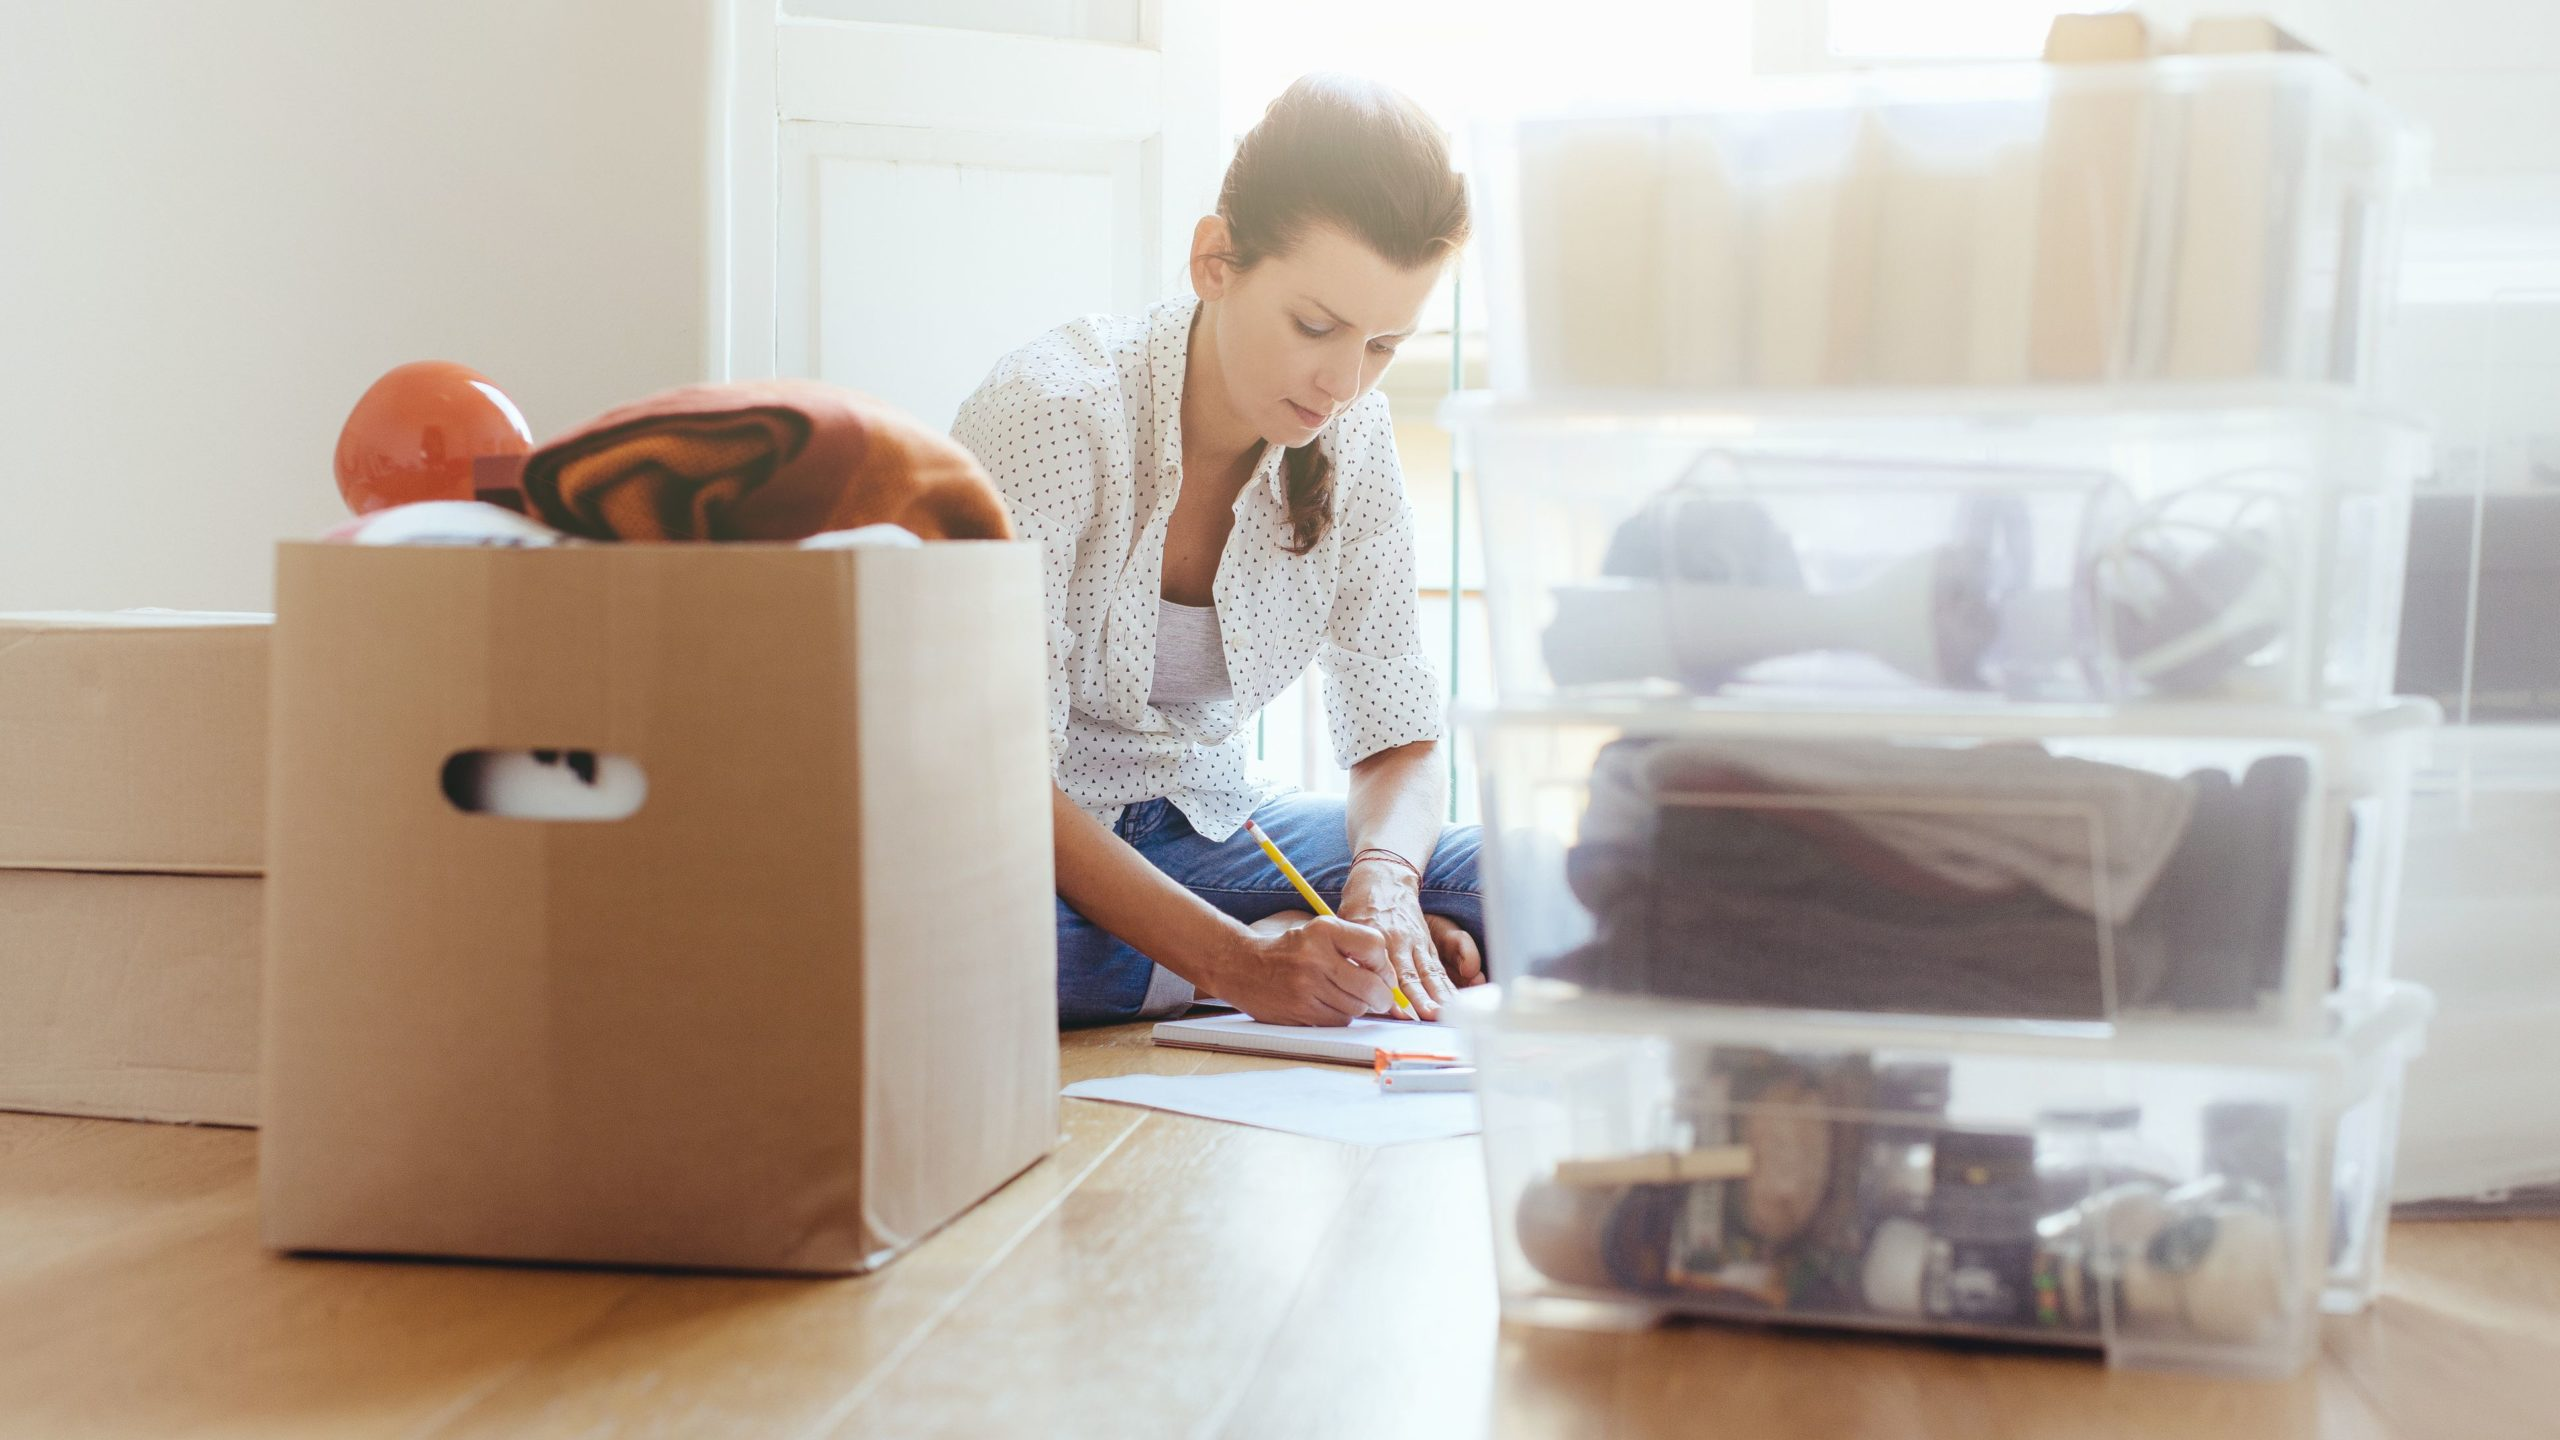 Woman filling moving boxes on the floor